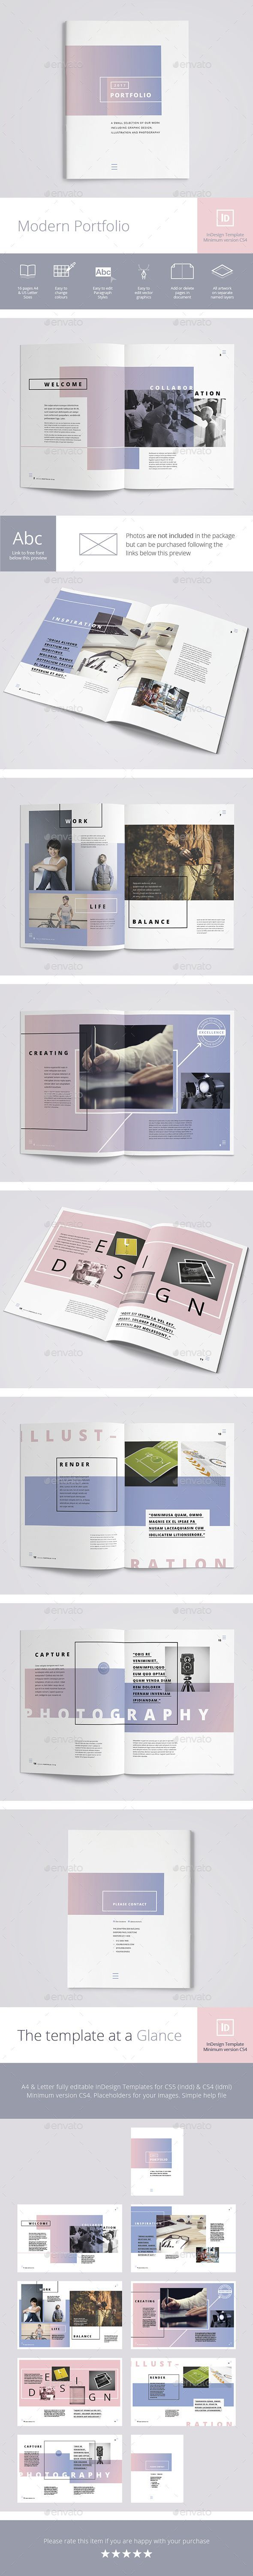 Modern Portfolio Brochure Template InDesign INDD Download here s graphicriver